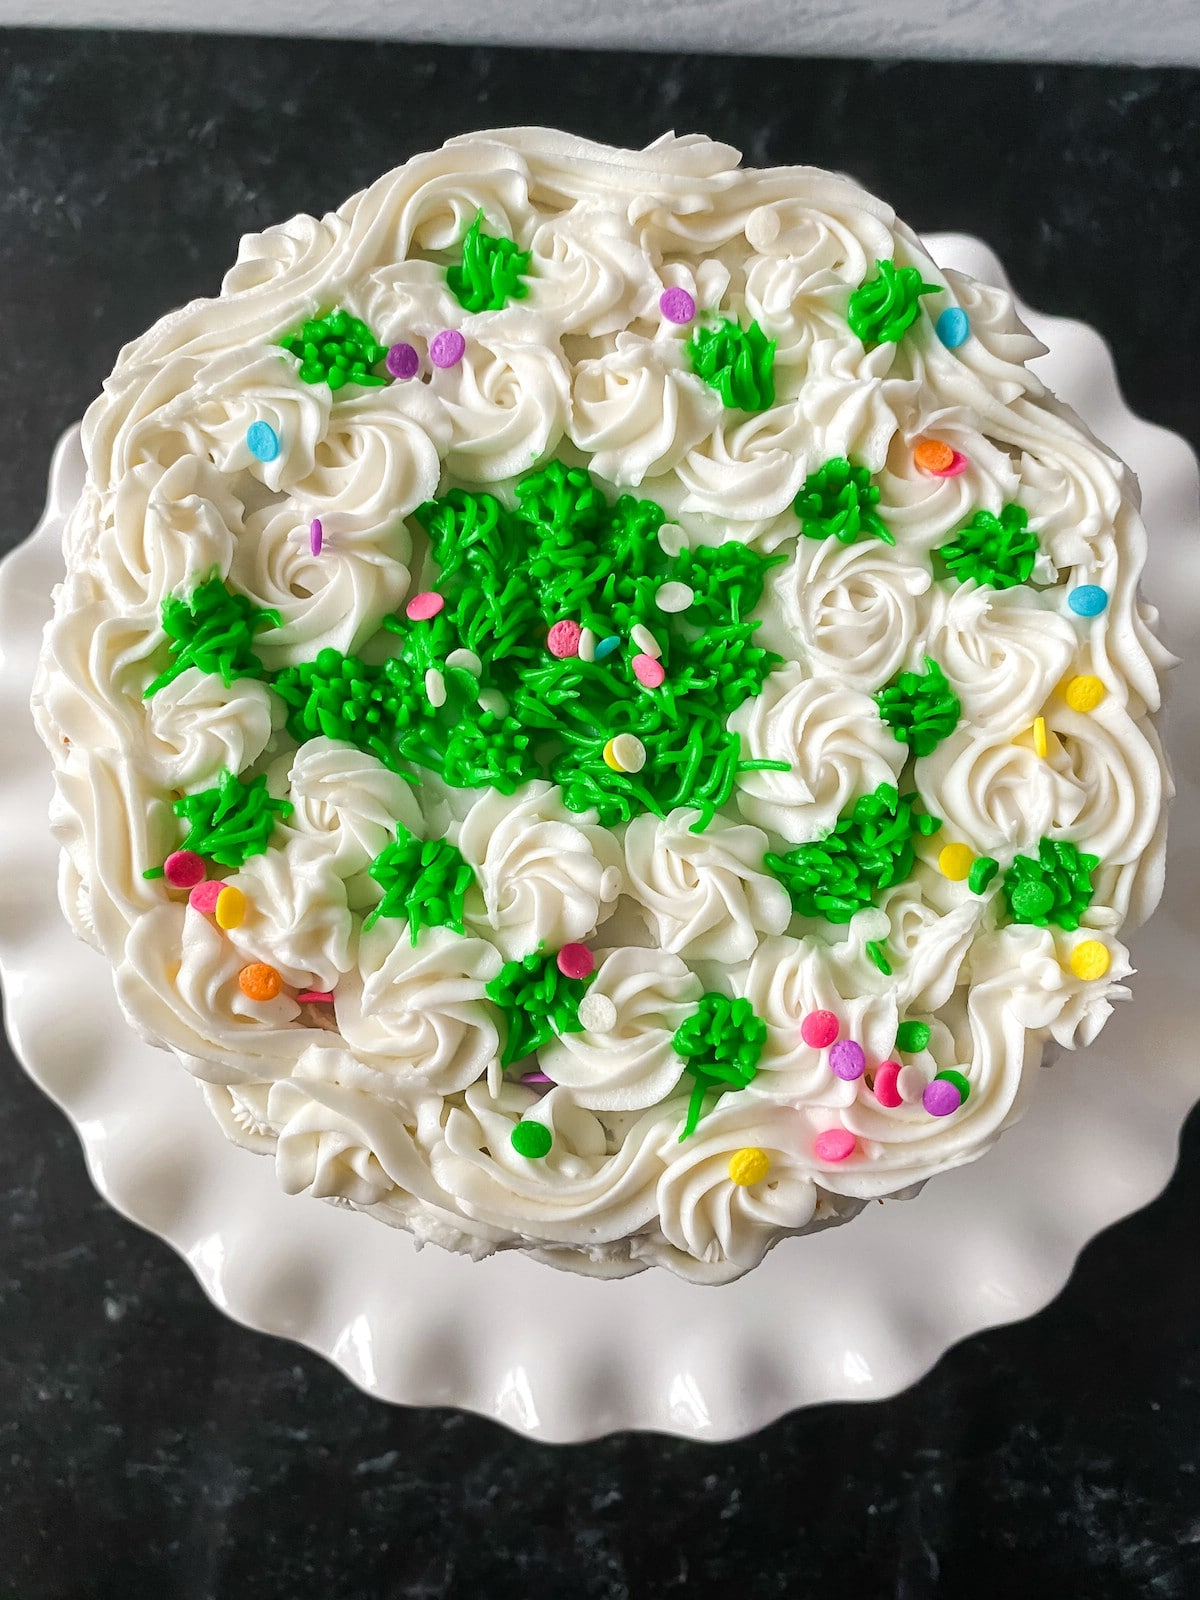 Top of iced cake with white basket weave and green fake grass top